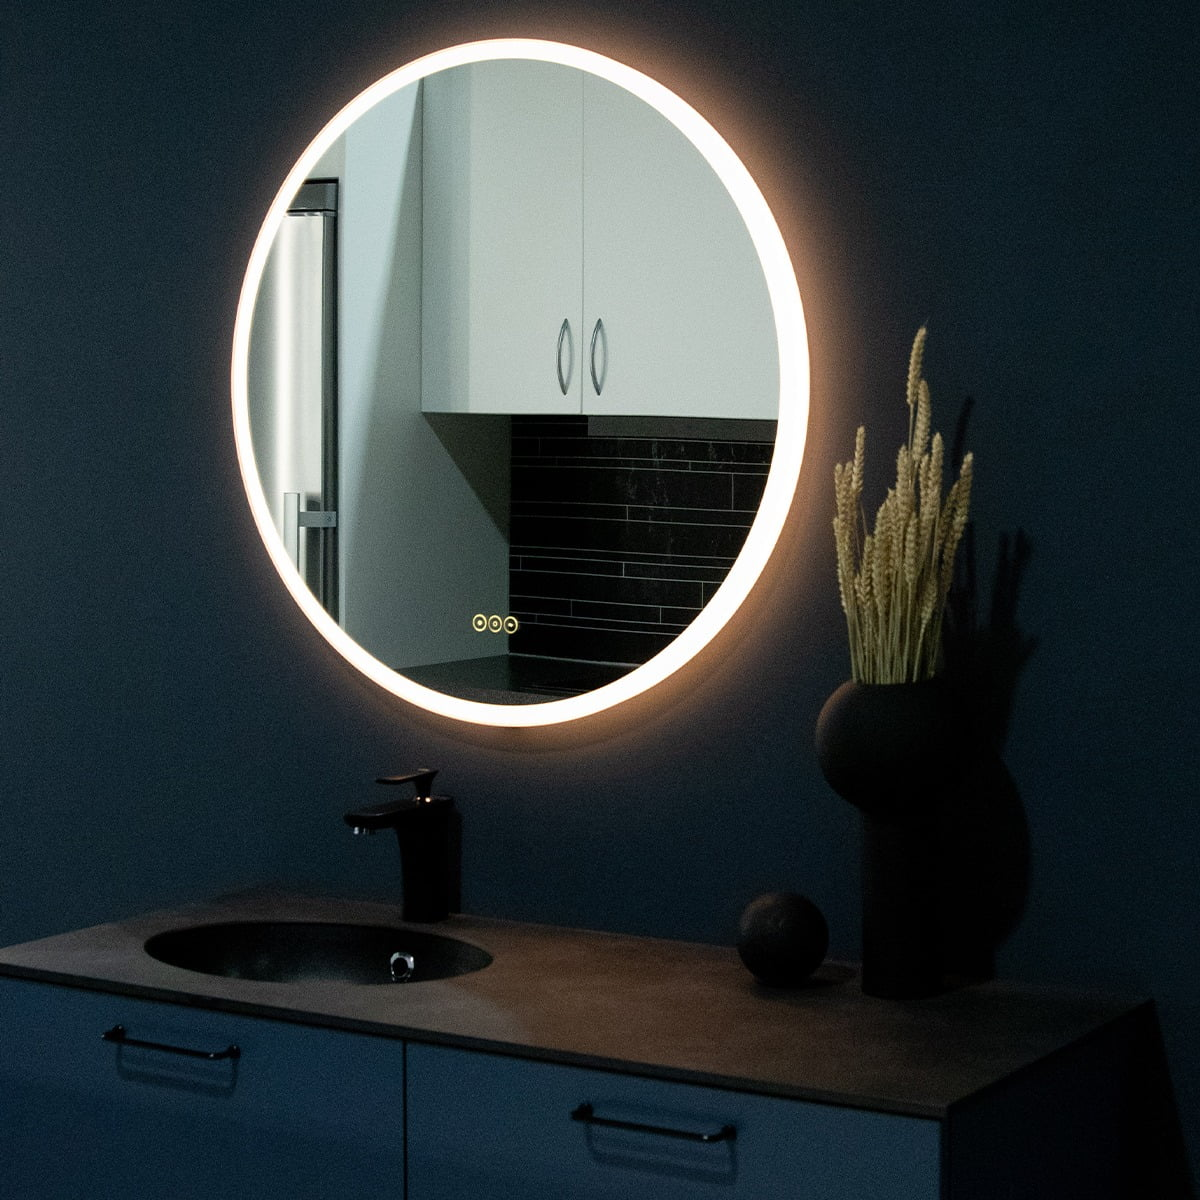 Interior design, Mirror, Plant, Cabinetry, Table, Black, Houseplant, Lighting, Wood, Countertop